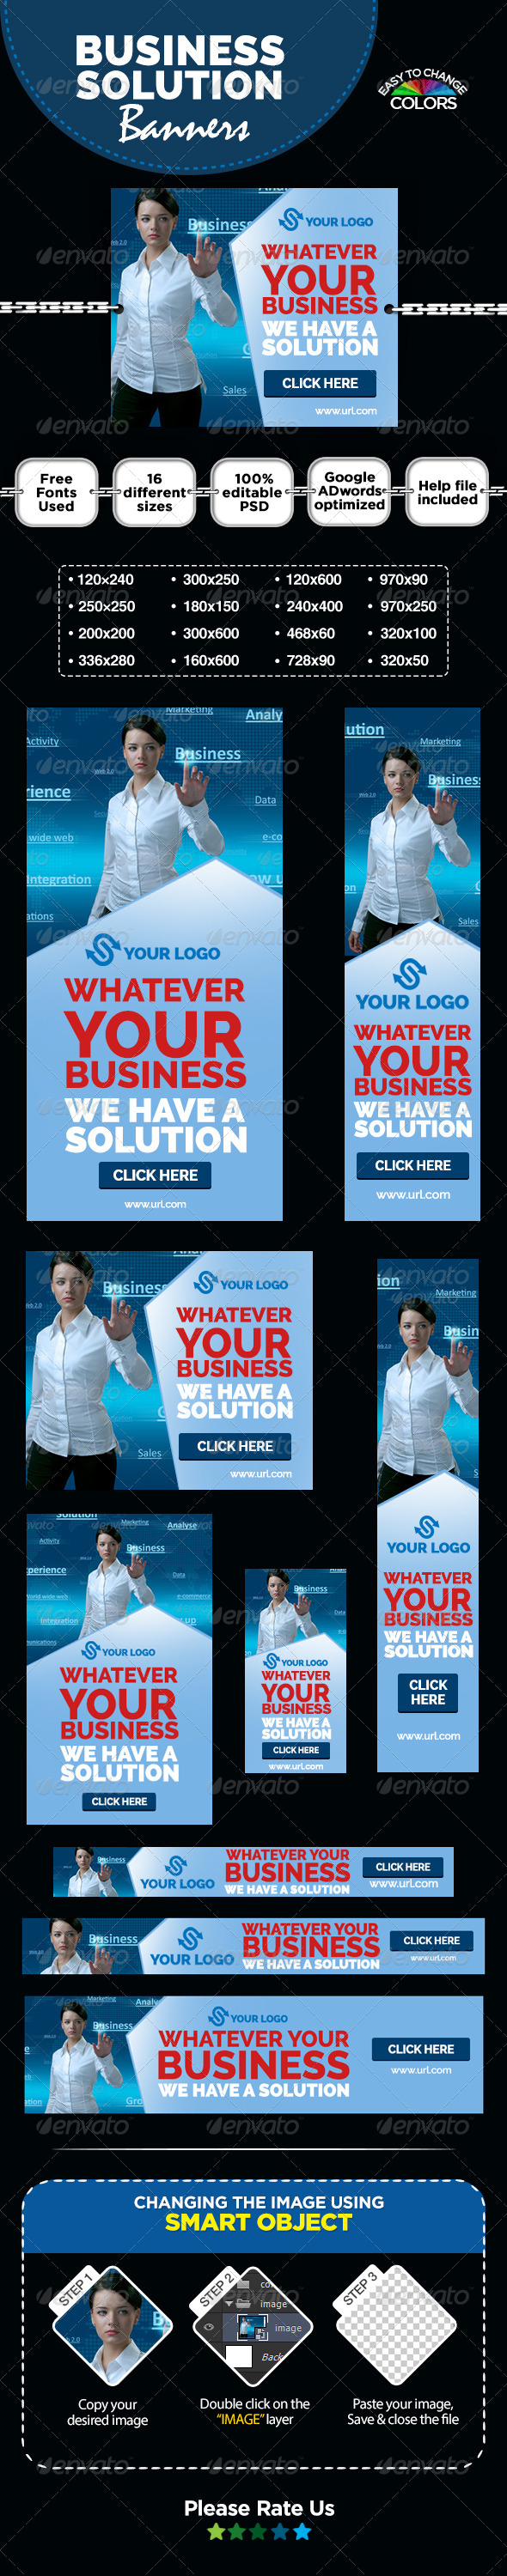 GraphicRiver Business Solutions Banners 8304589